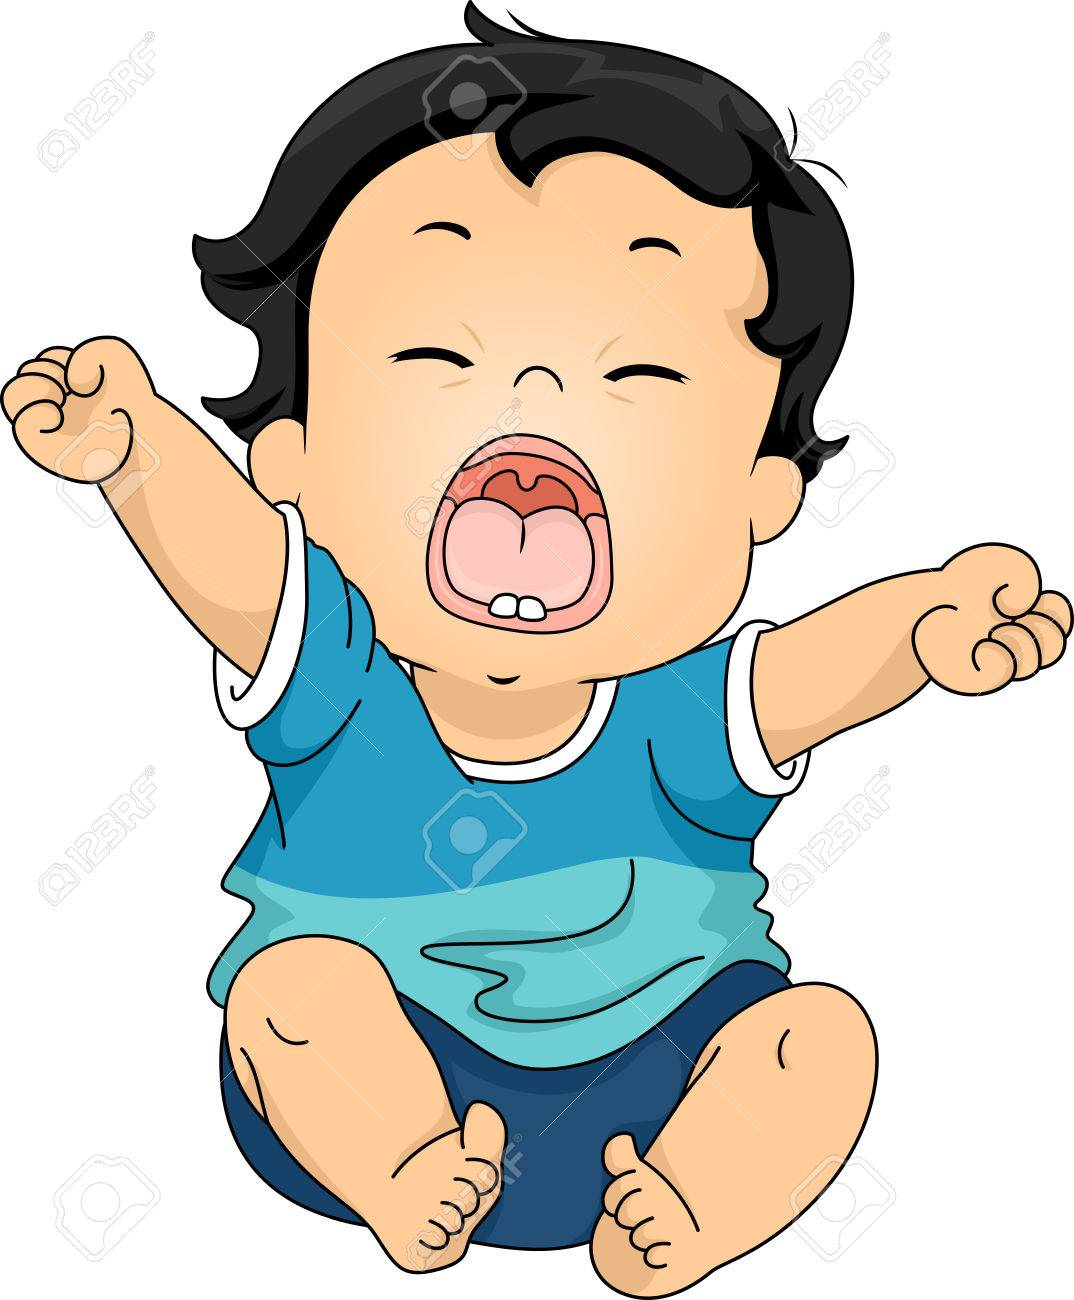 Illustration Featuring A Baby Yawning While Stretching His Arms ... for Clipart Yawn  166kxo